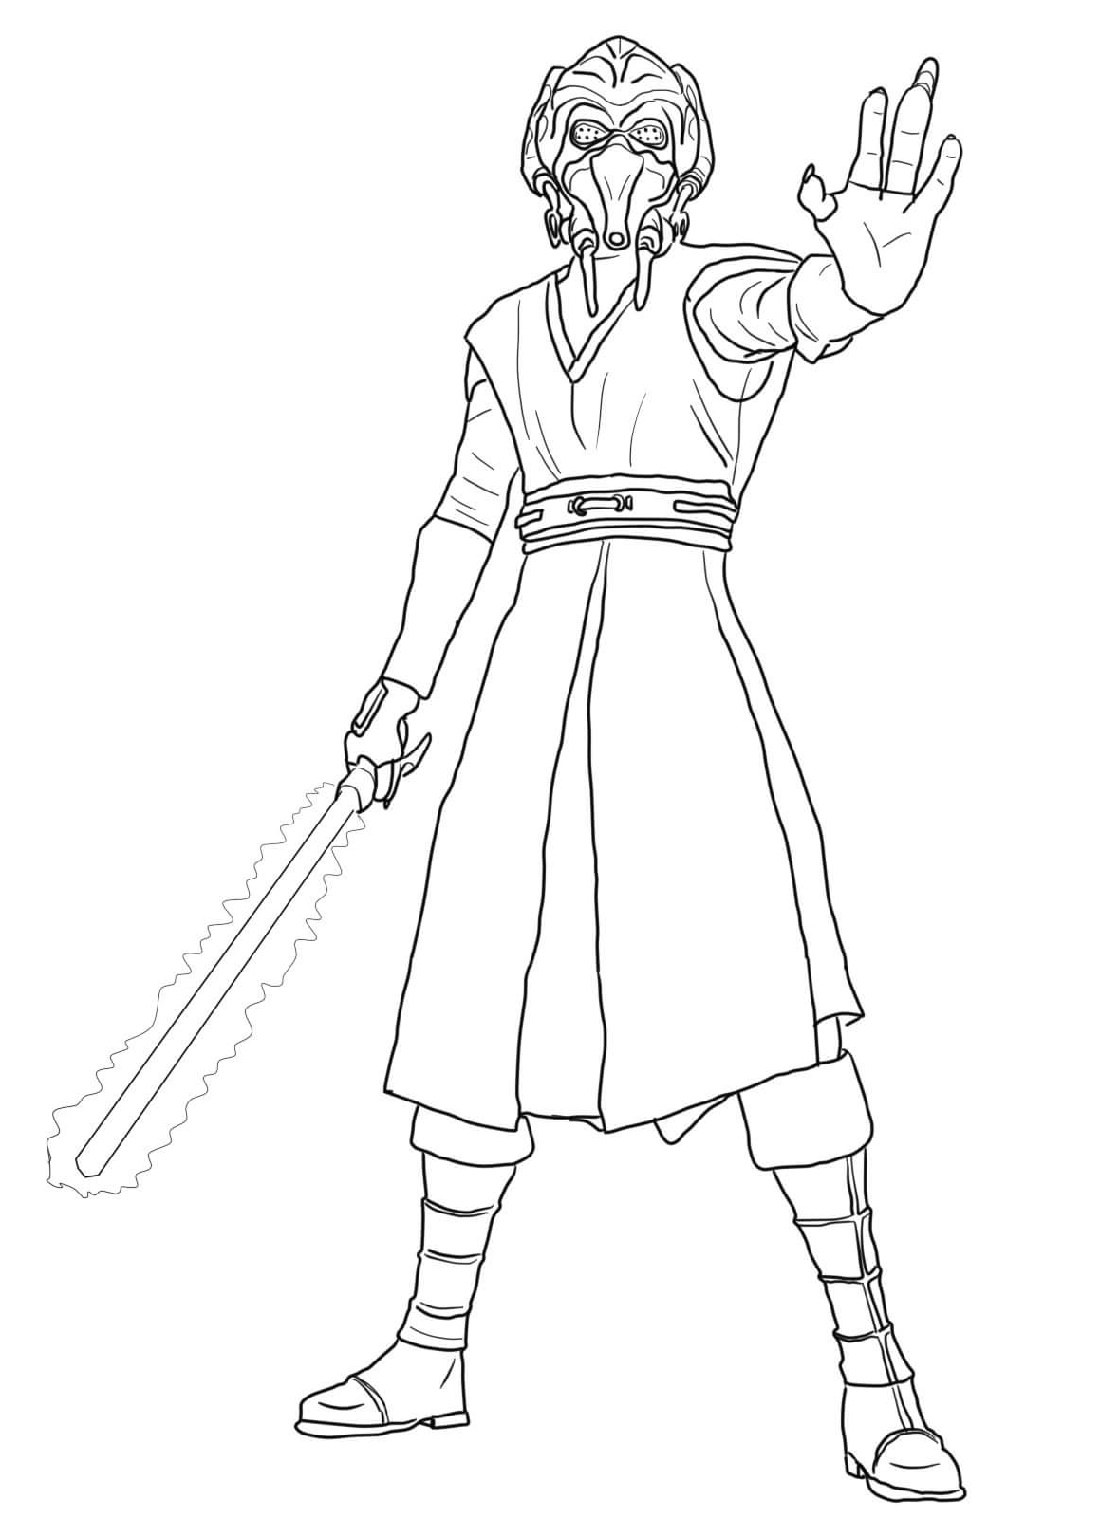 plo koon coloring pages plo koon super coloring lineart star wars pinterest coloring pages koon plo